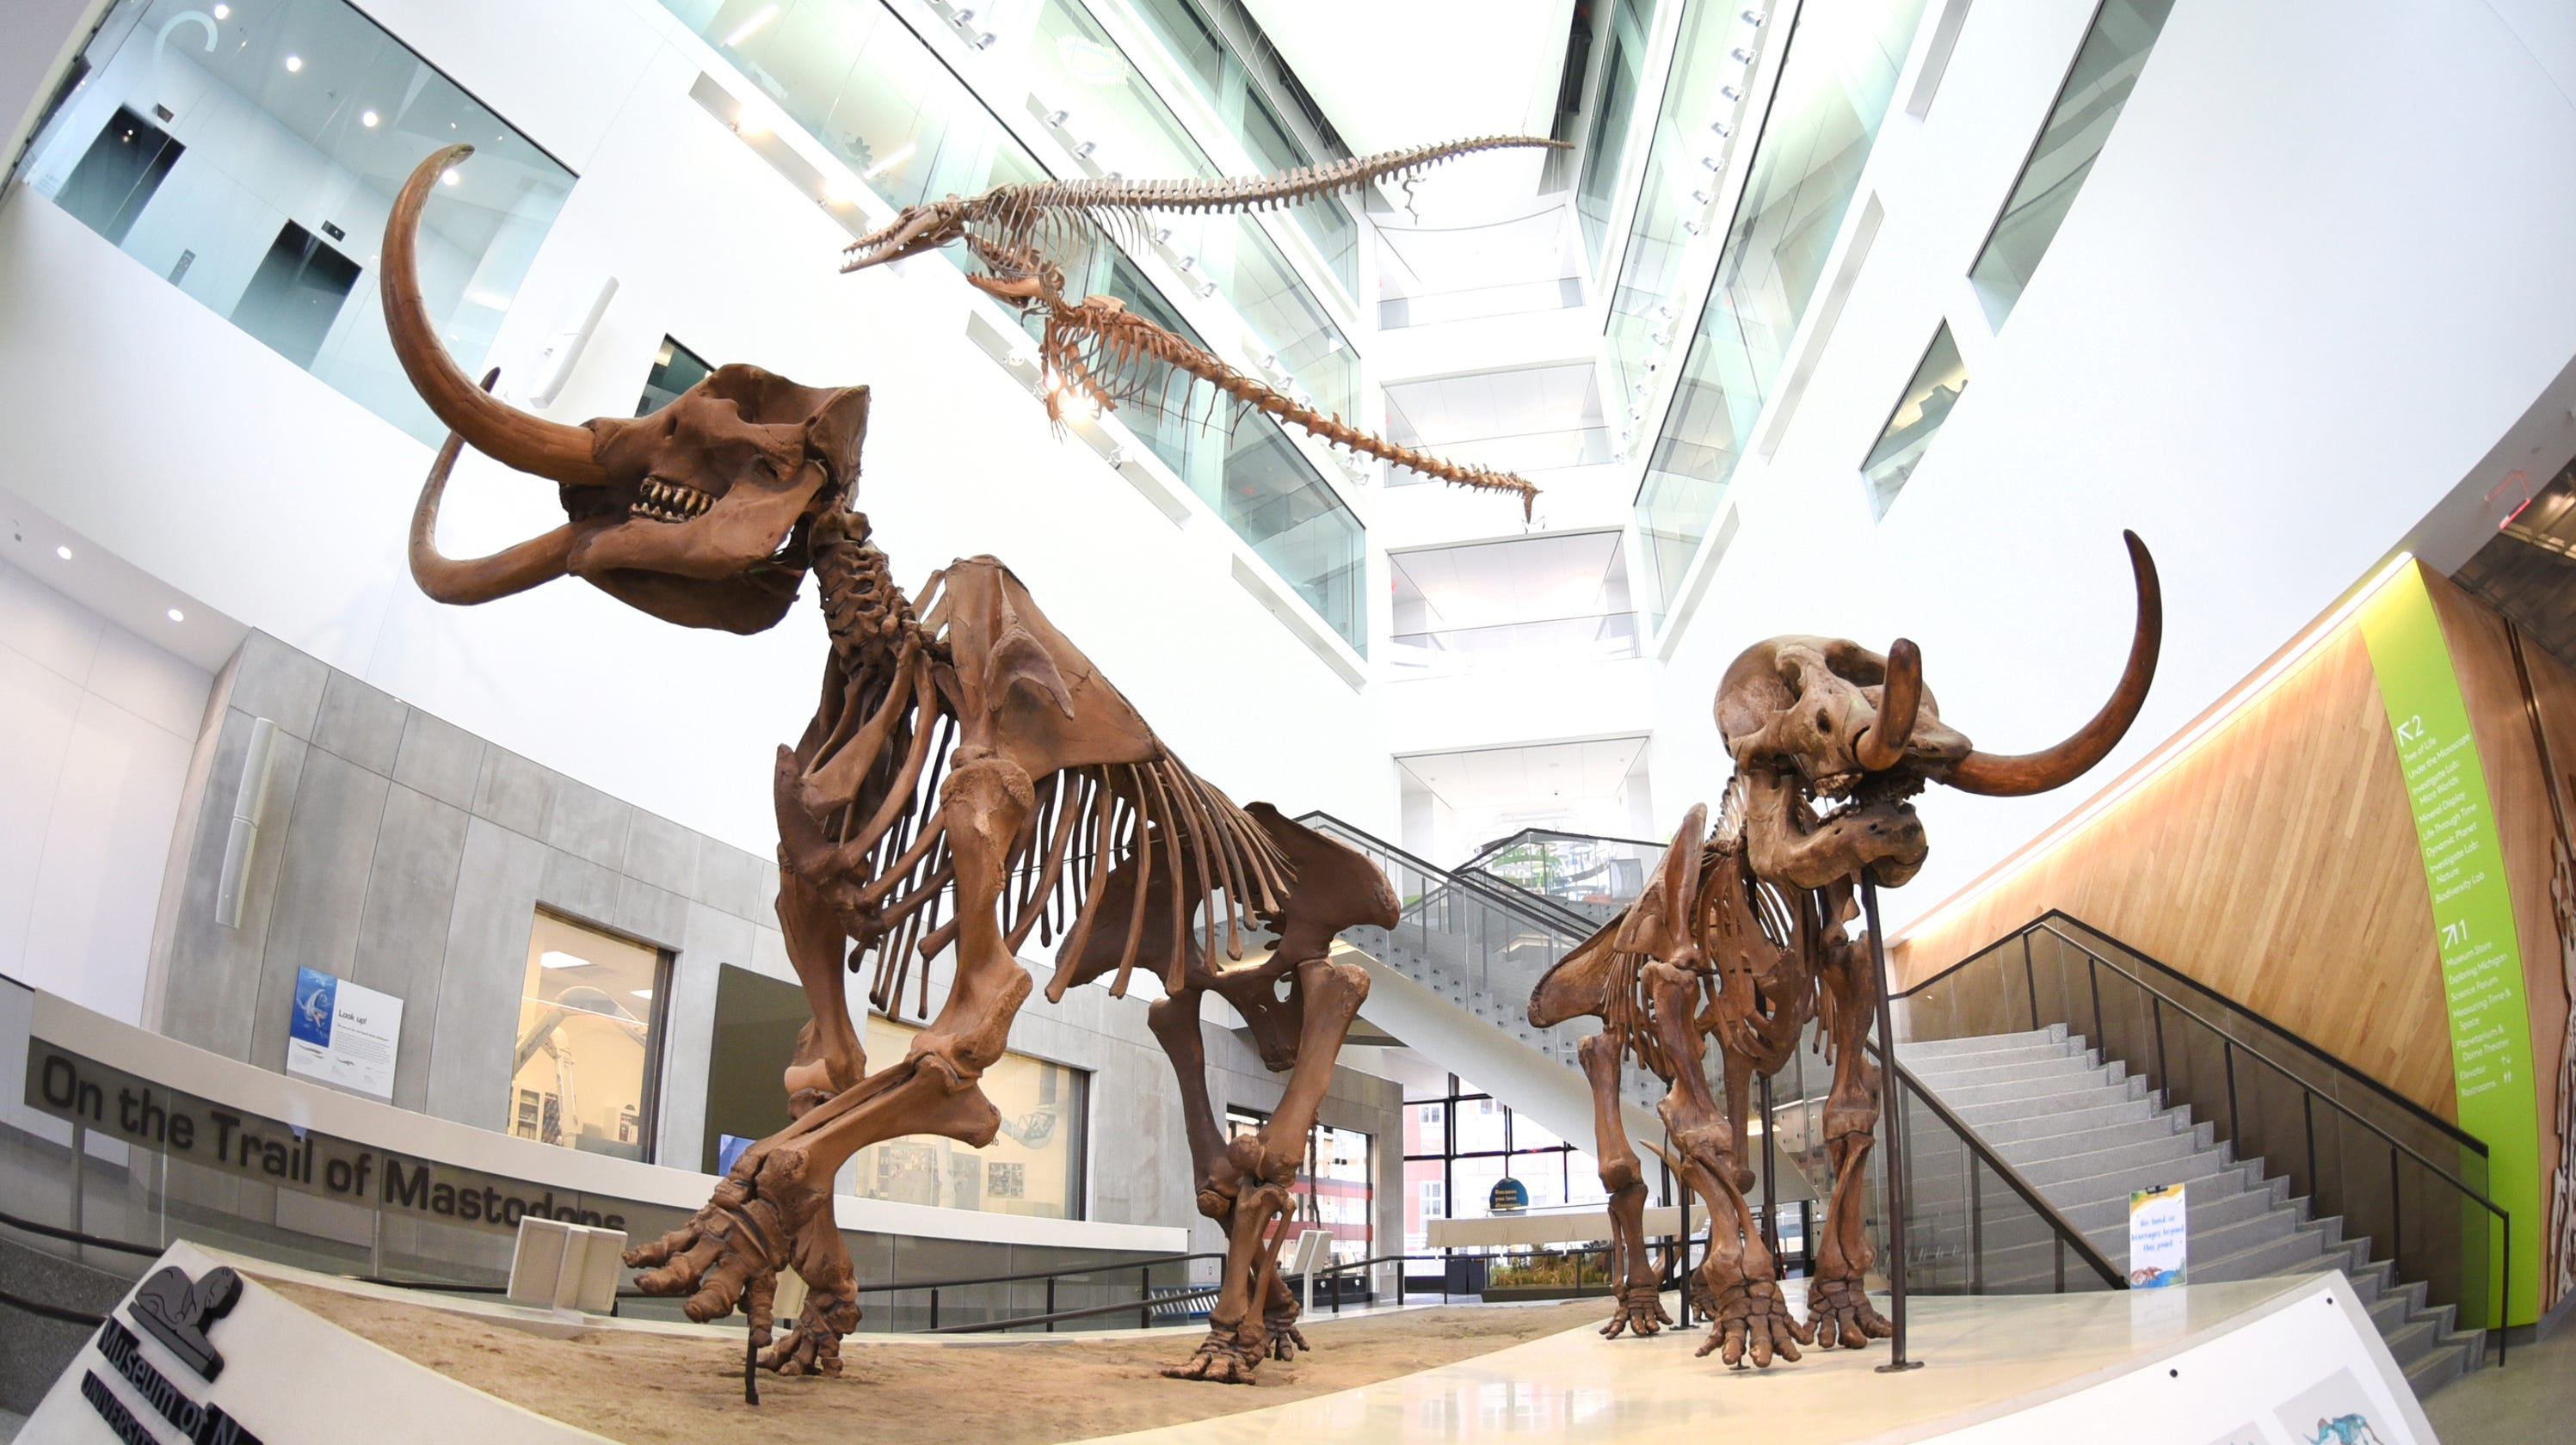 QnA VBage University of Michigan natural history museum reopening to public